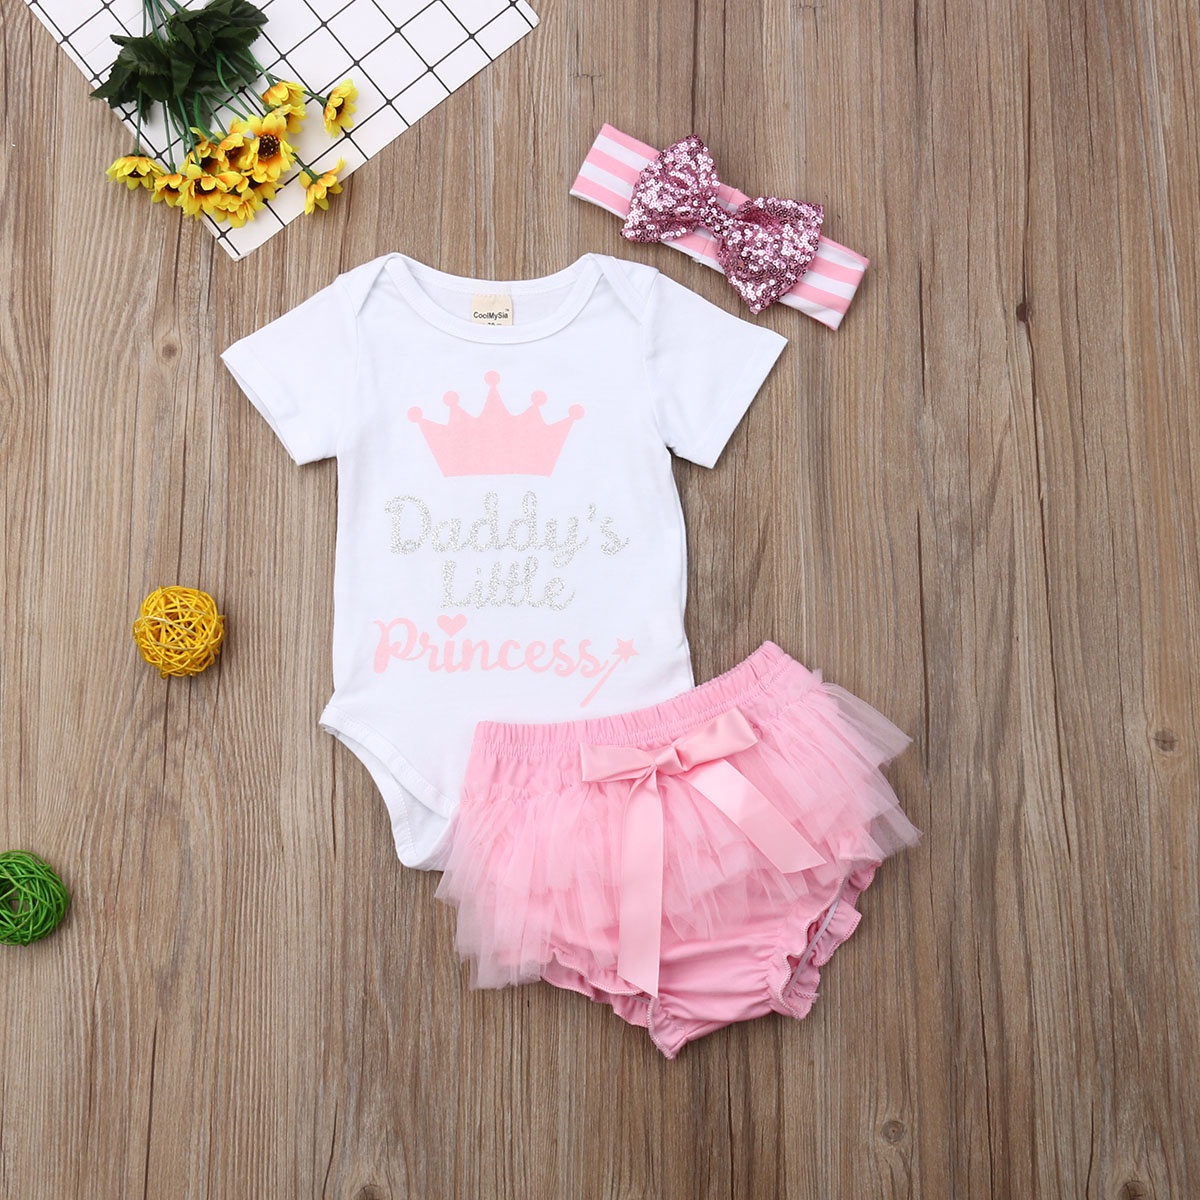 Newborn Set 2020 Baby Girl Romper Tops Bodysuits Tutu Pants Headband Outfits Clothes Set Baby Summer Body Suits Clothing